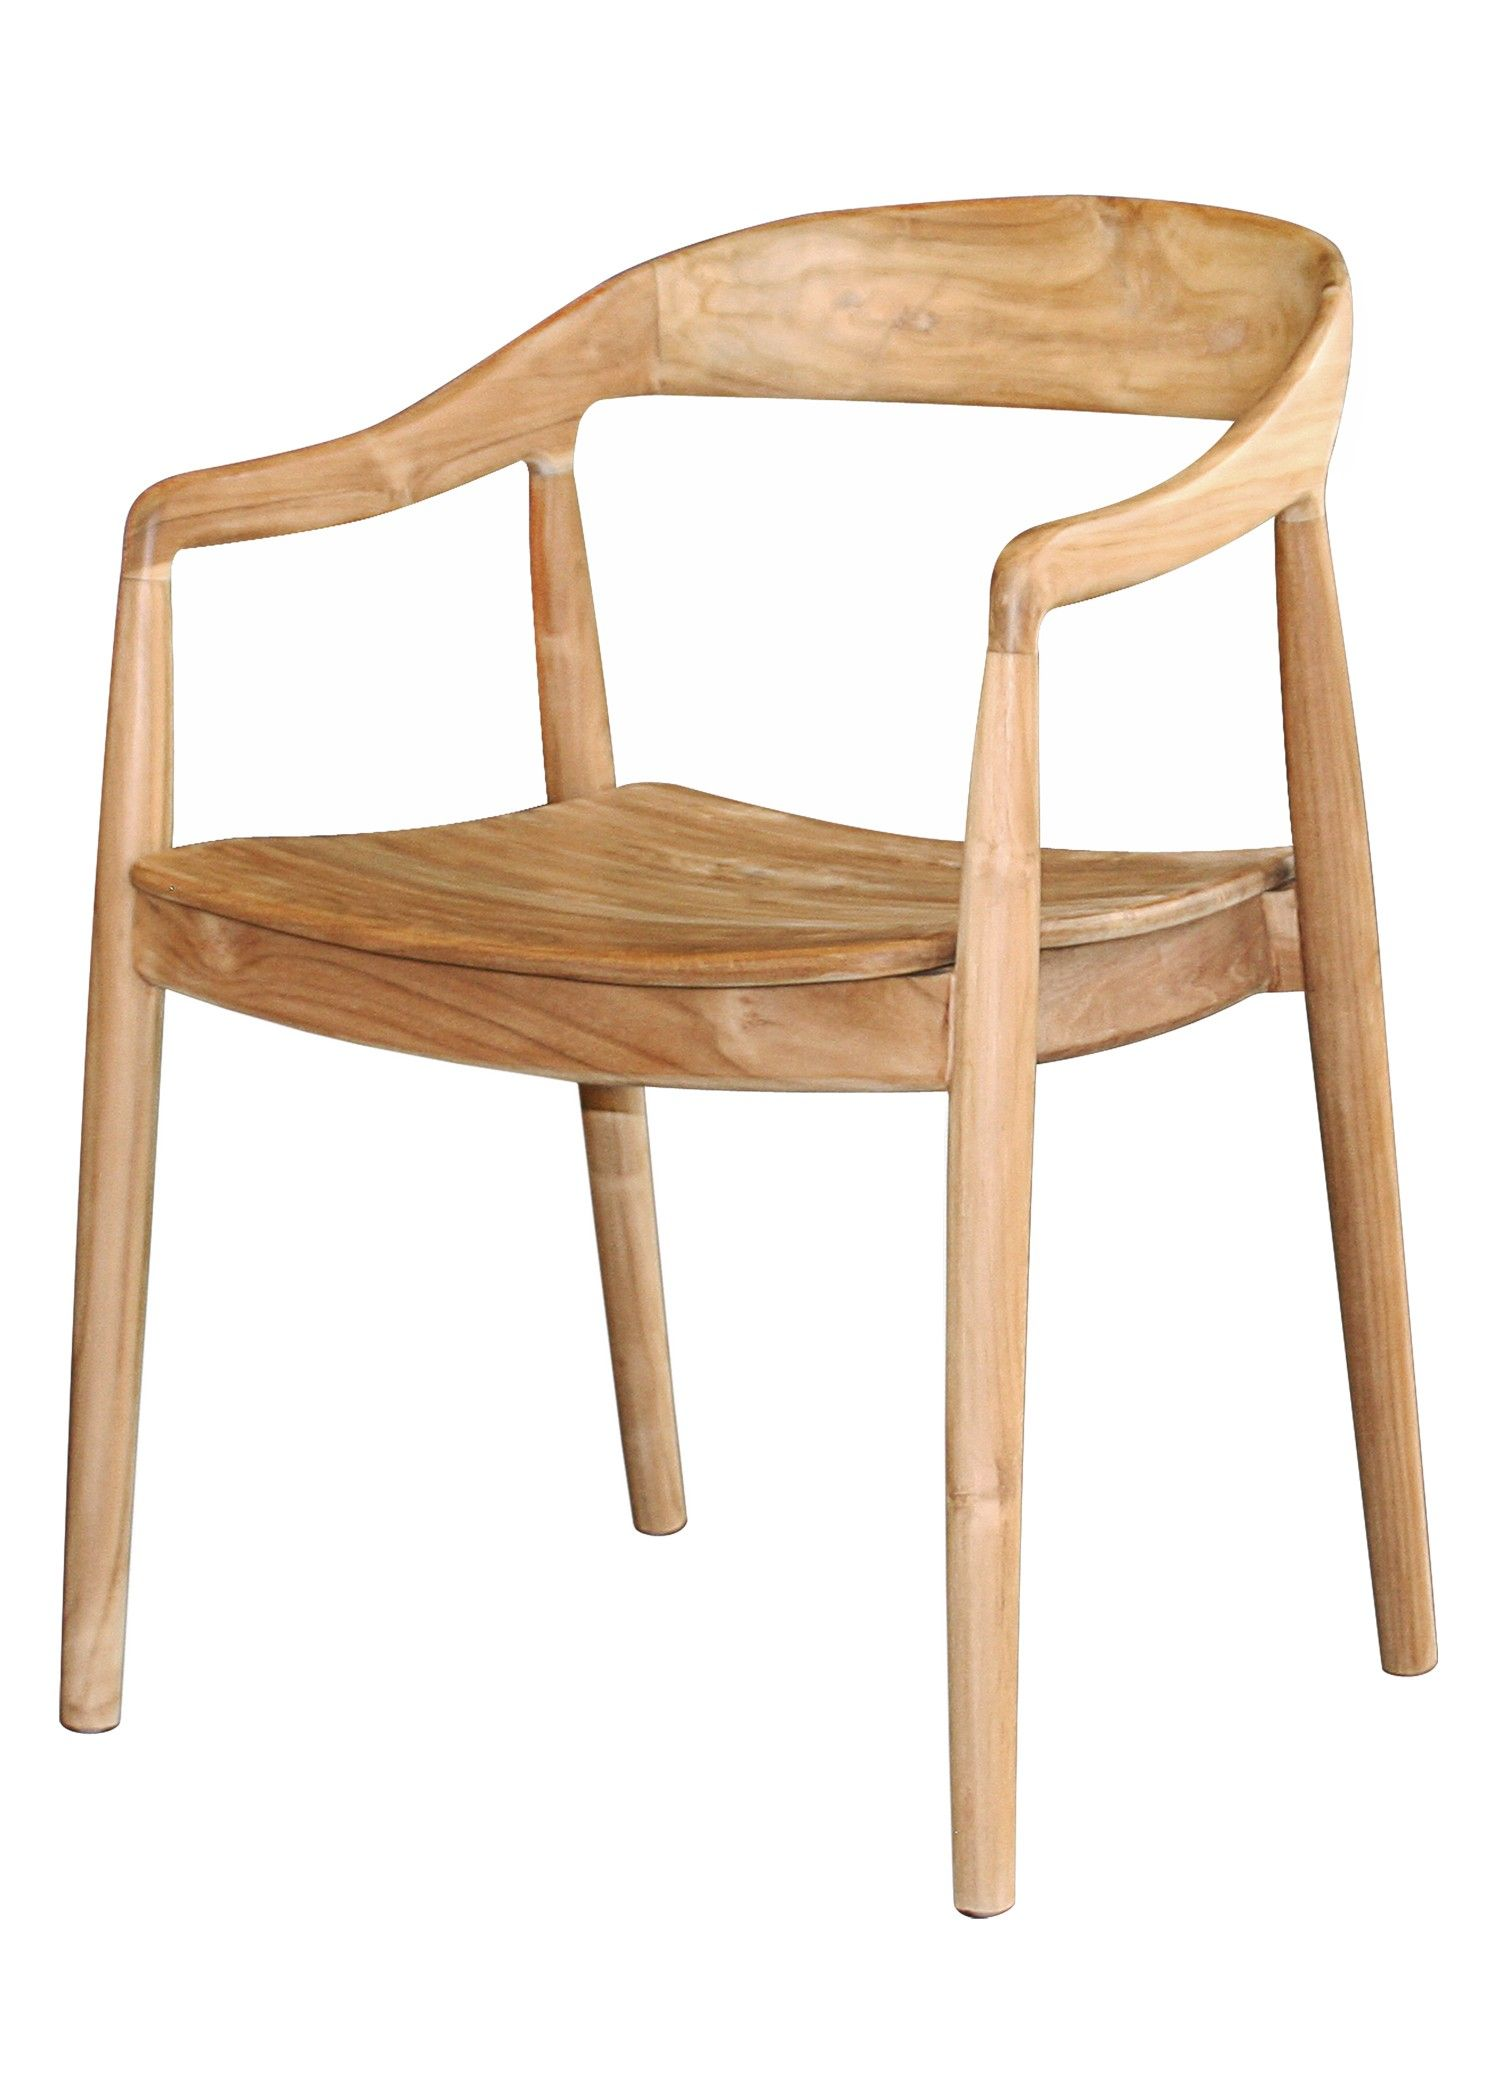 Teak Wood With A Varied Grain Appearance Work Together With The Shape Of The Chair To Create A Mid Cen Teak Dining Chairs Furniture Dining Chairs Dining Chairs